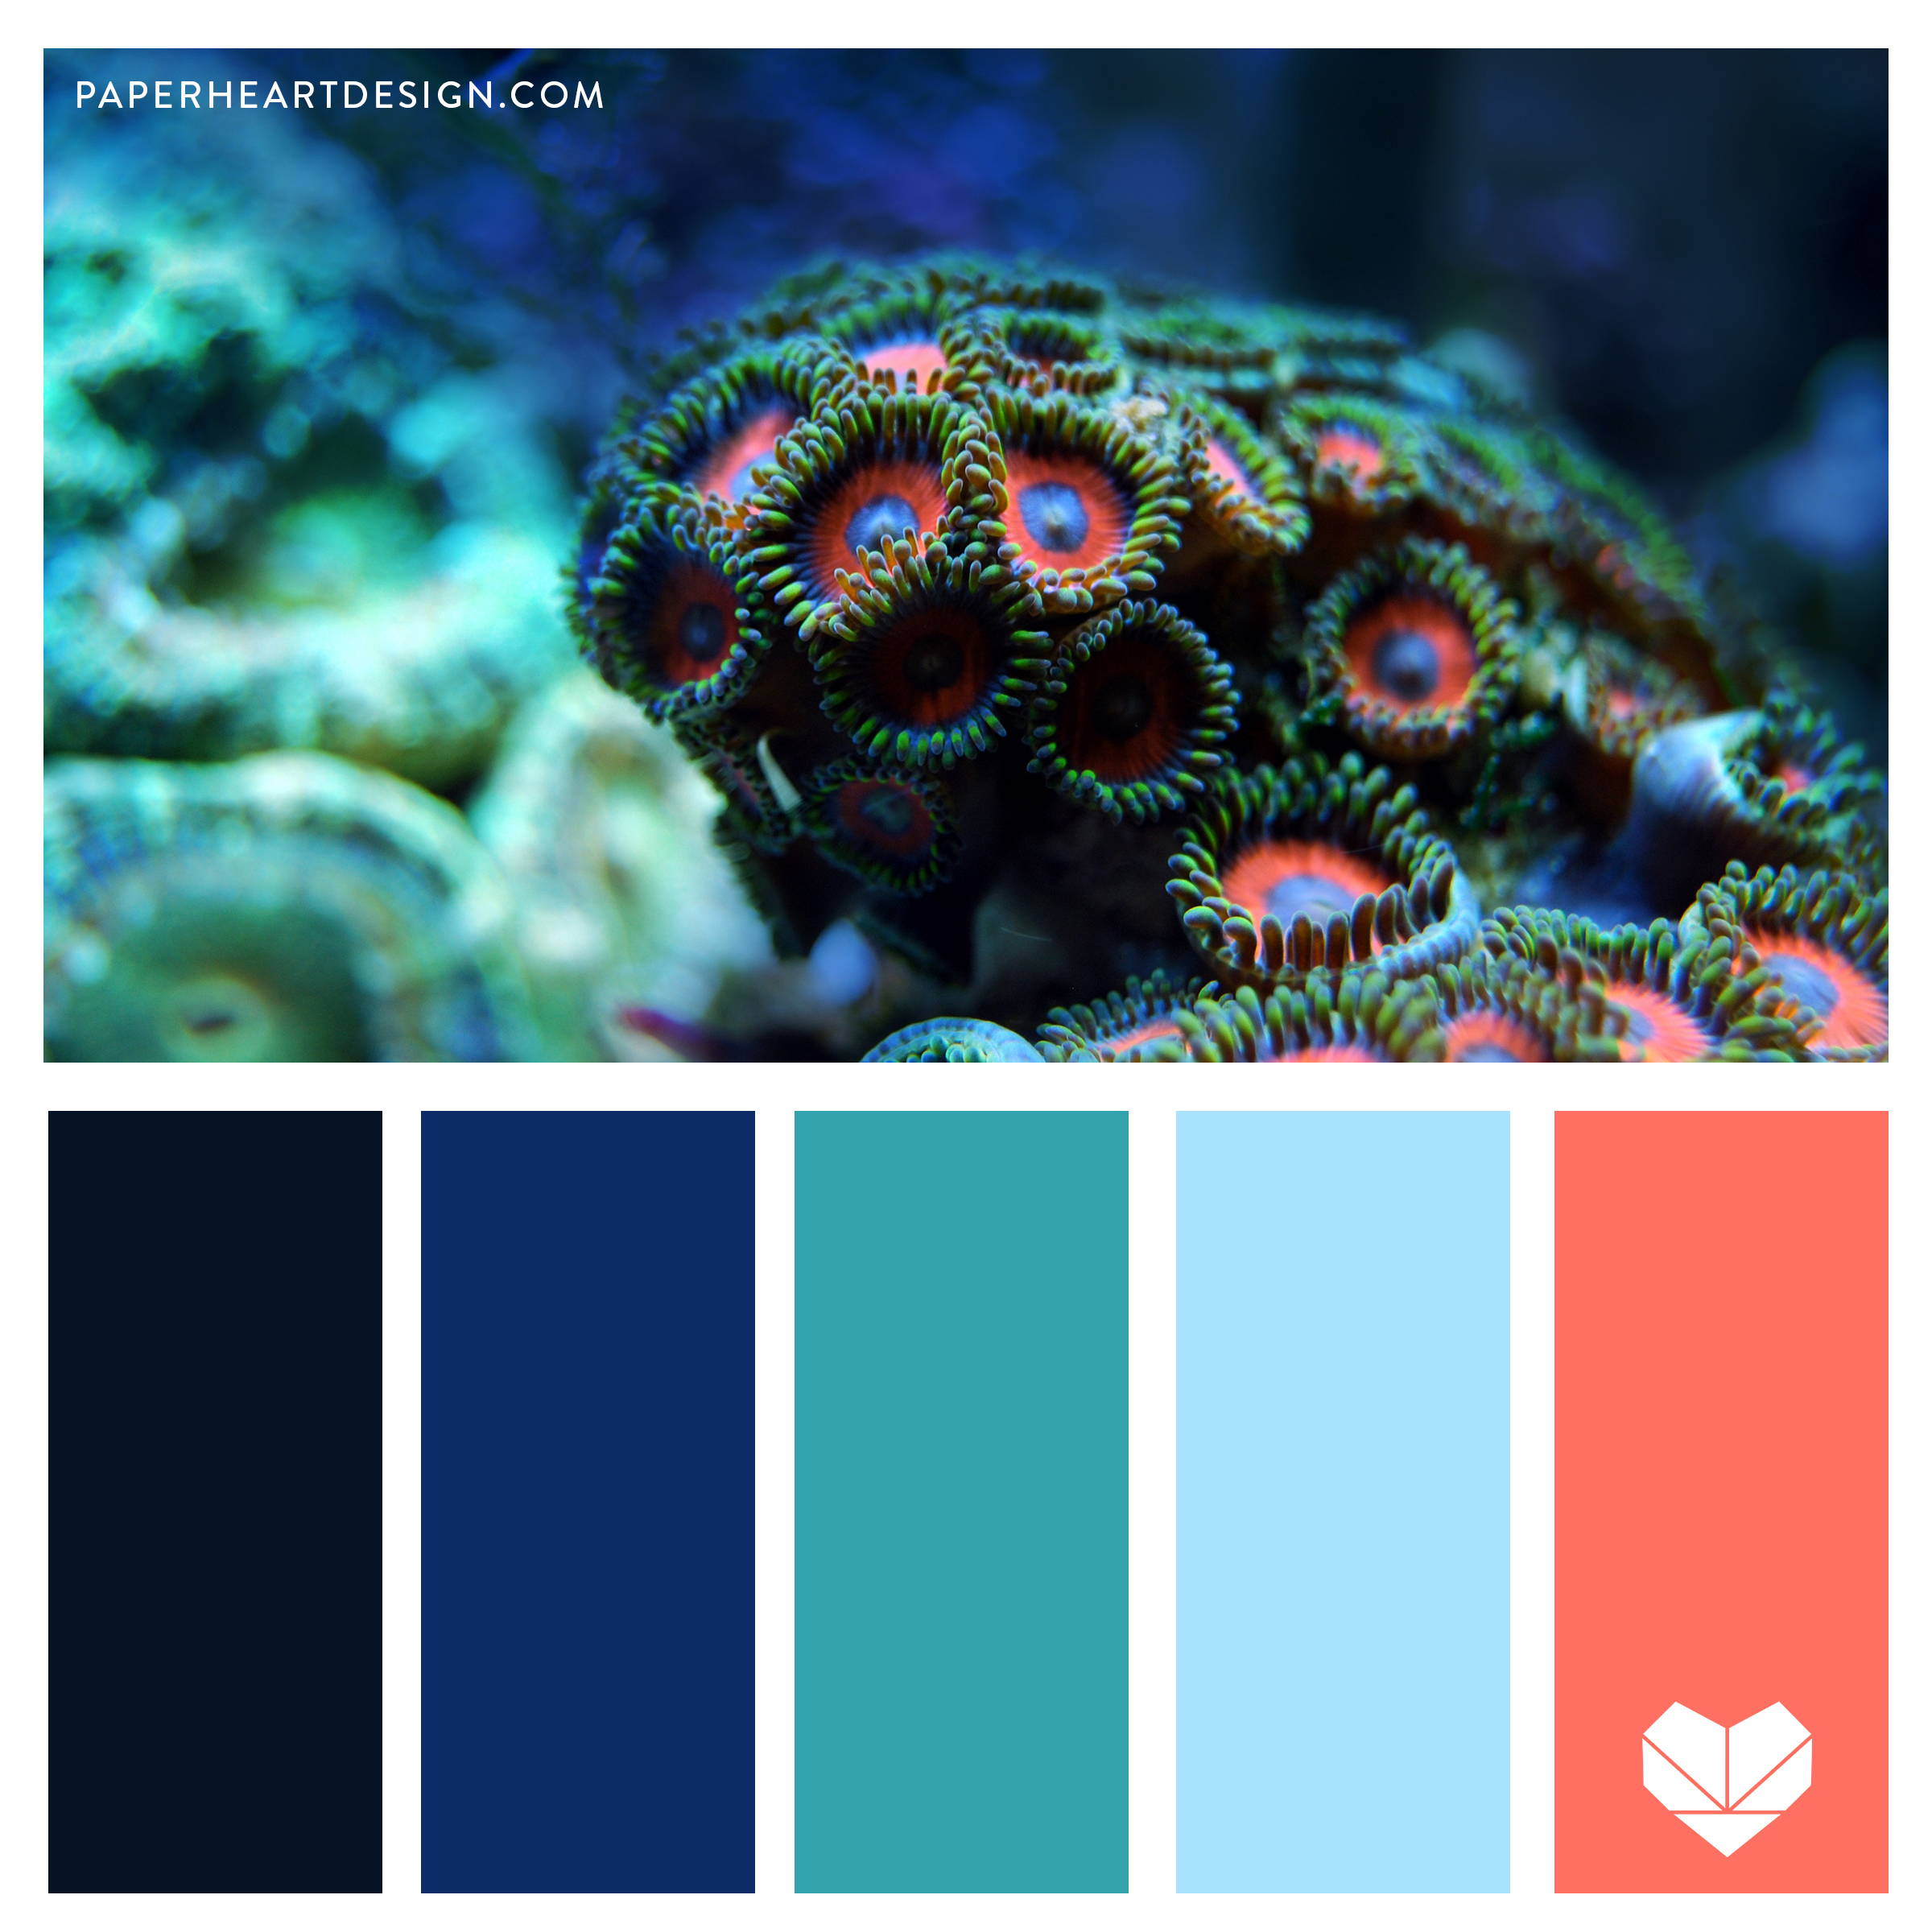 Ocean Vibes. Coral, Blue, 2019 Color of the Year, Pantone